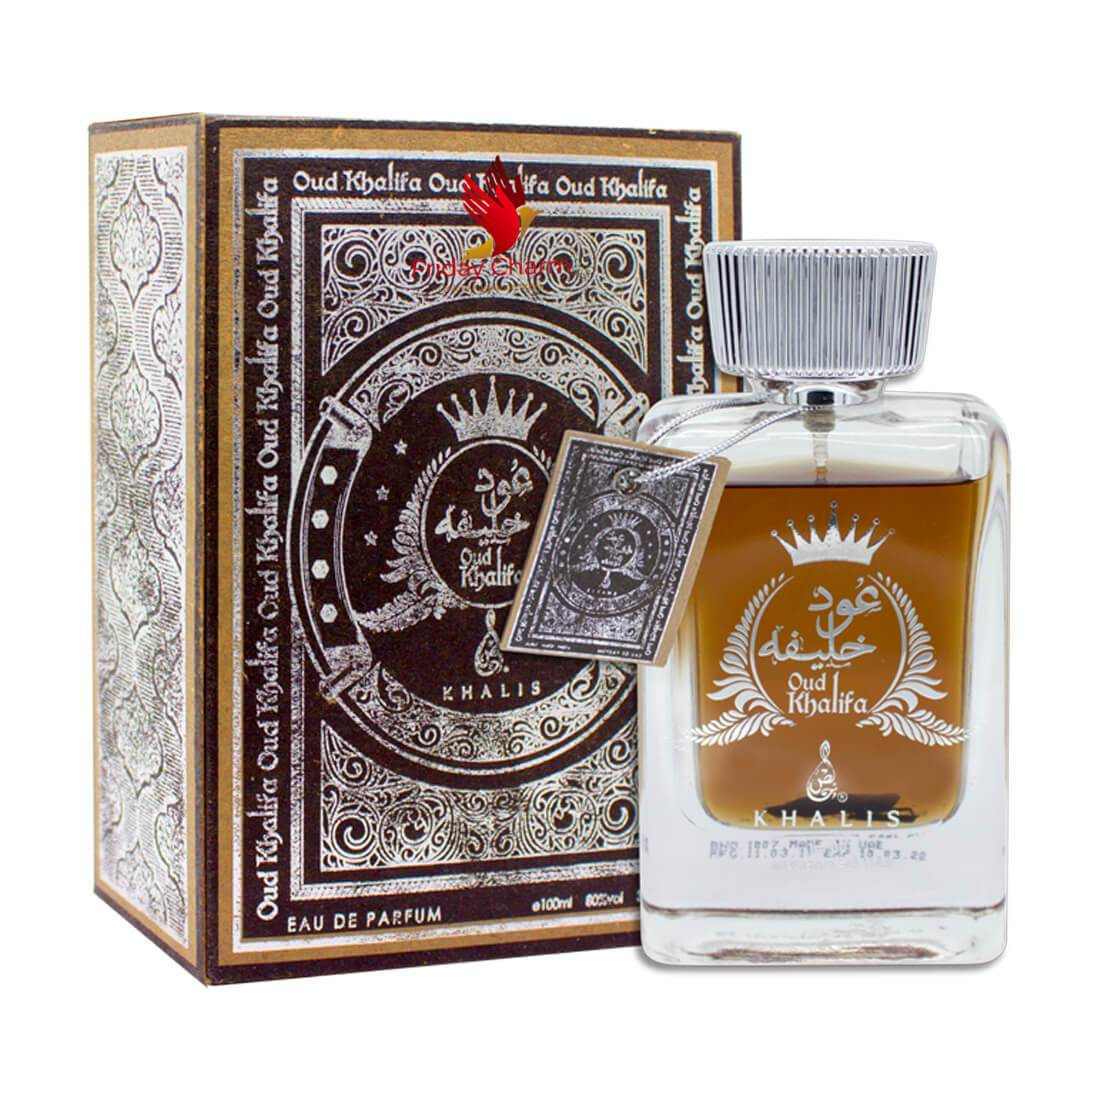 Khalis Oudh Khalifa Fragrance Spray - 100 ml